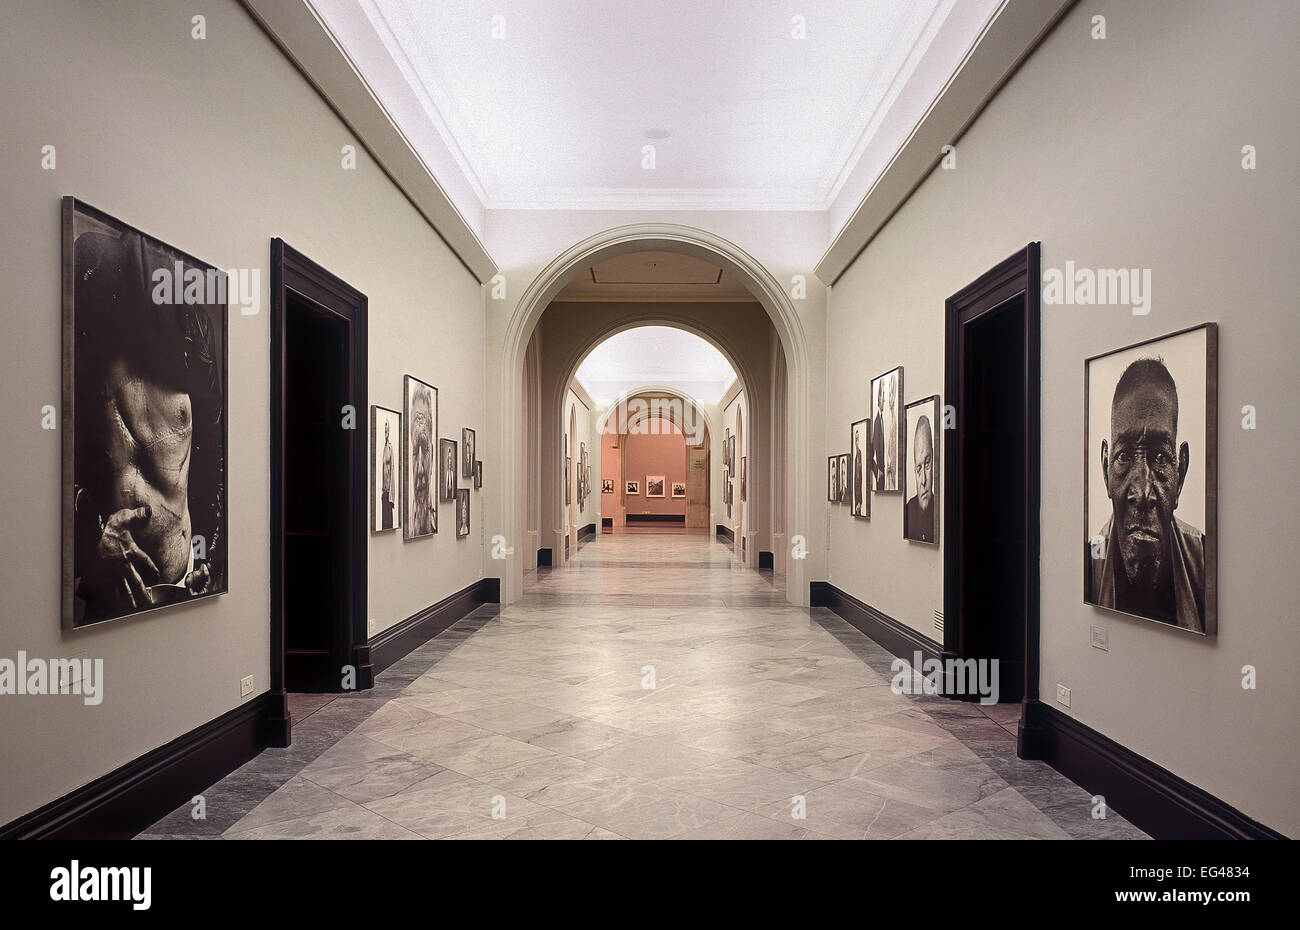 Empty Gallery Stock Photos & Empty Gallery Stock Images - Alamy